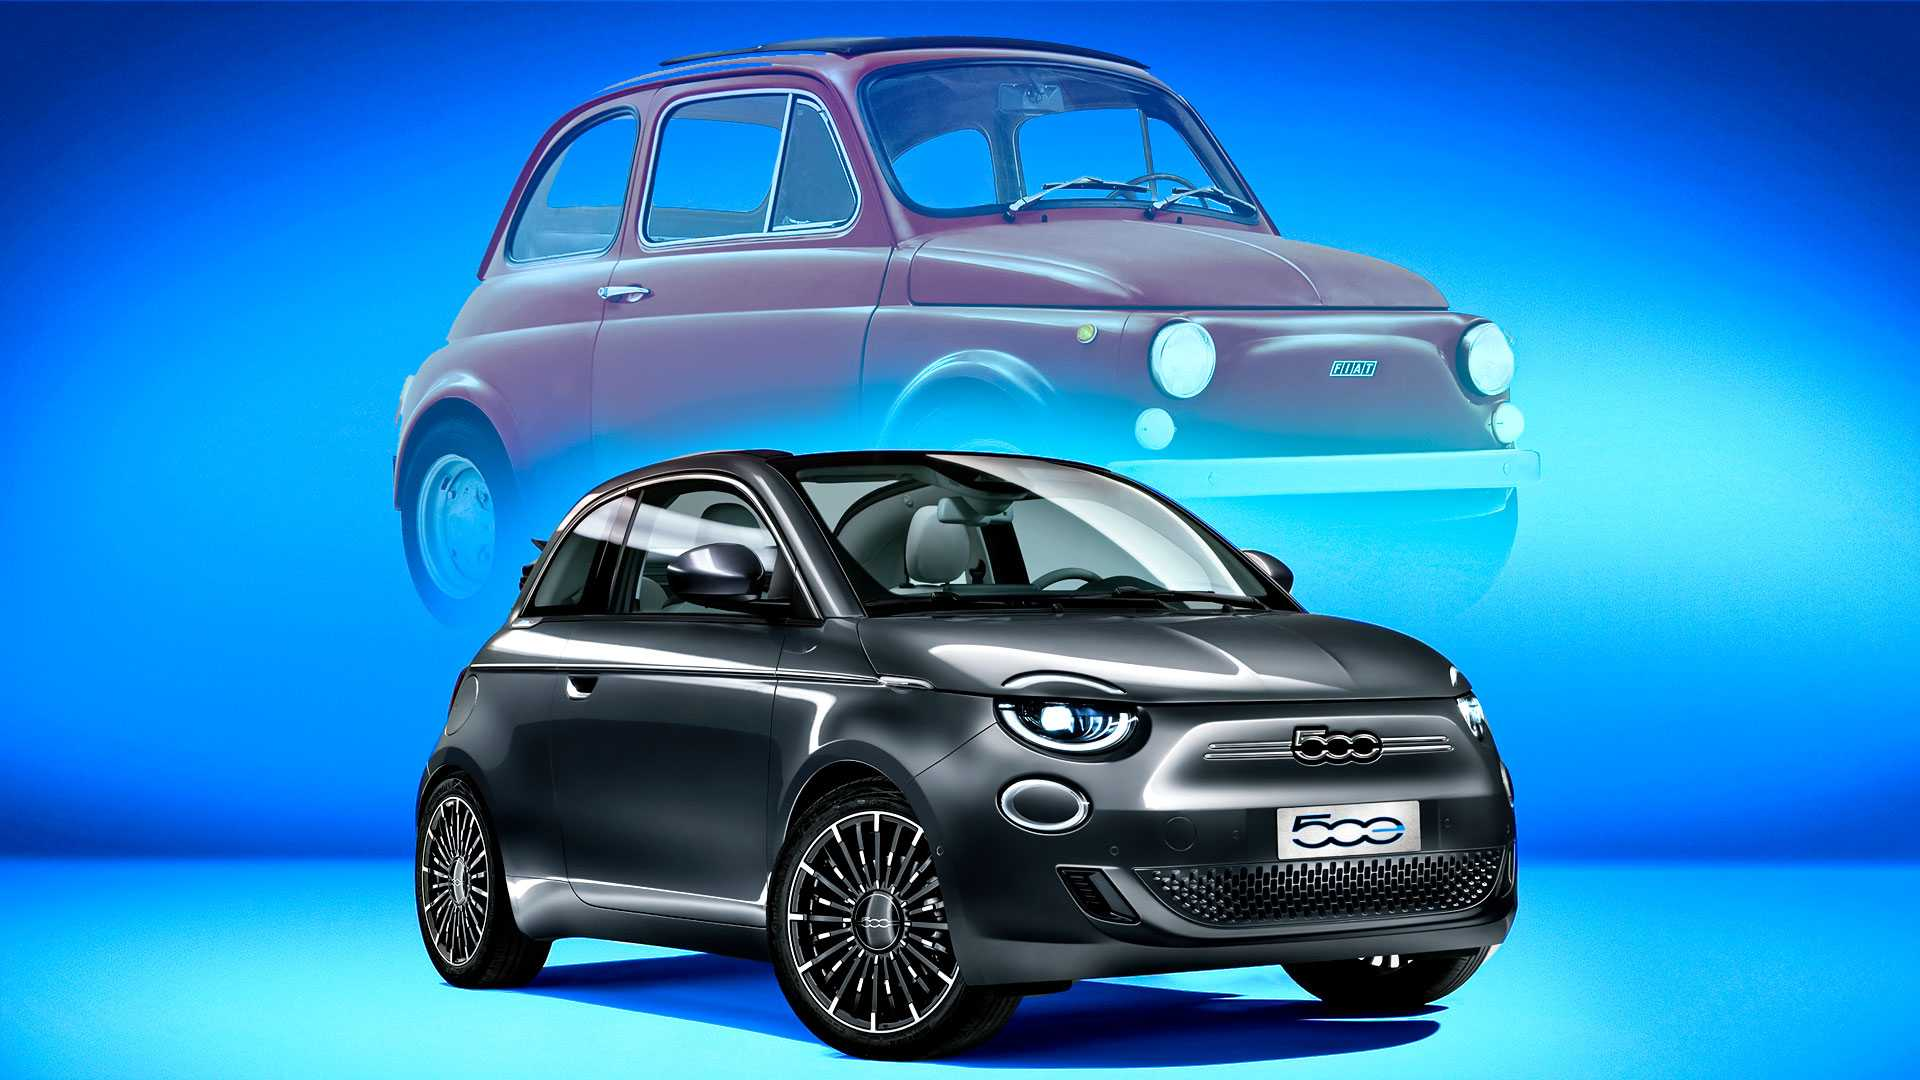 New Fiat 500e Revealed With 199